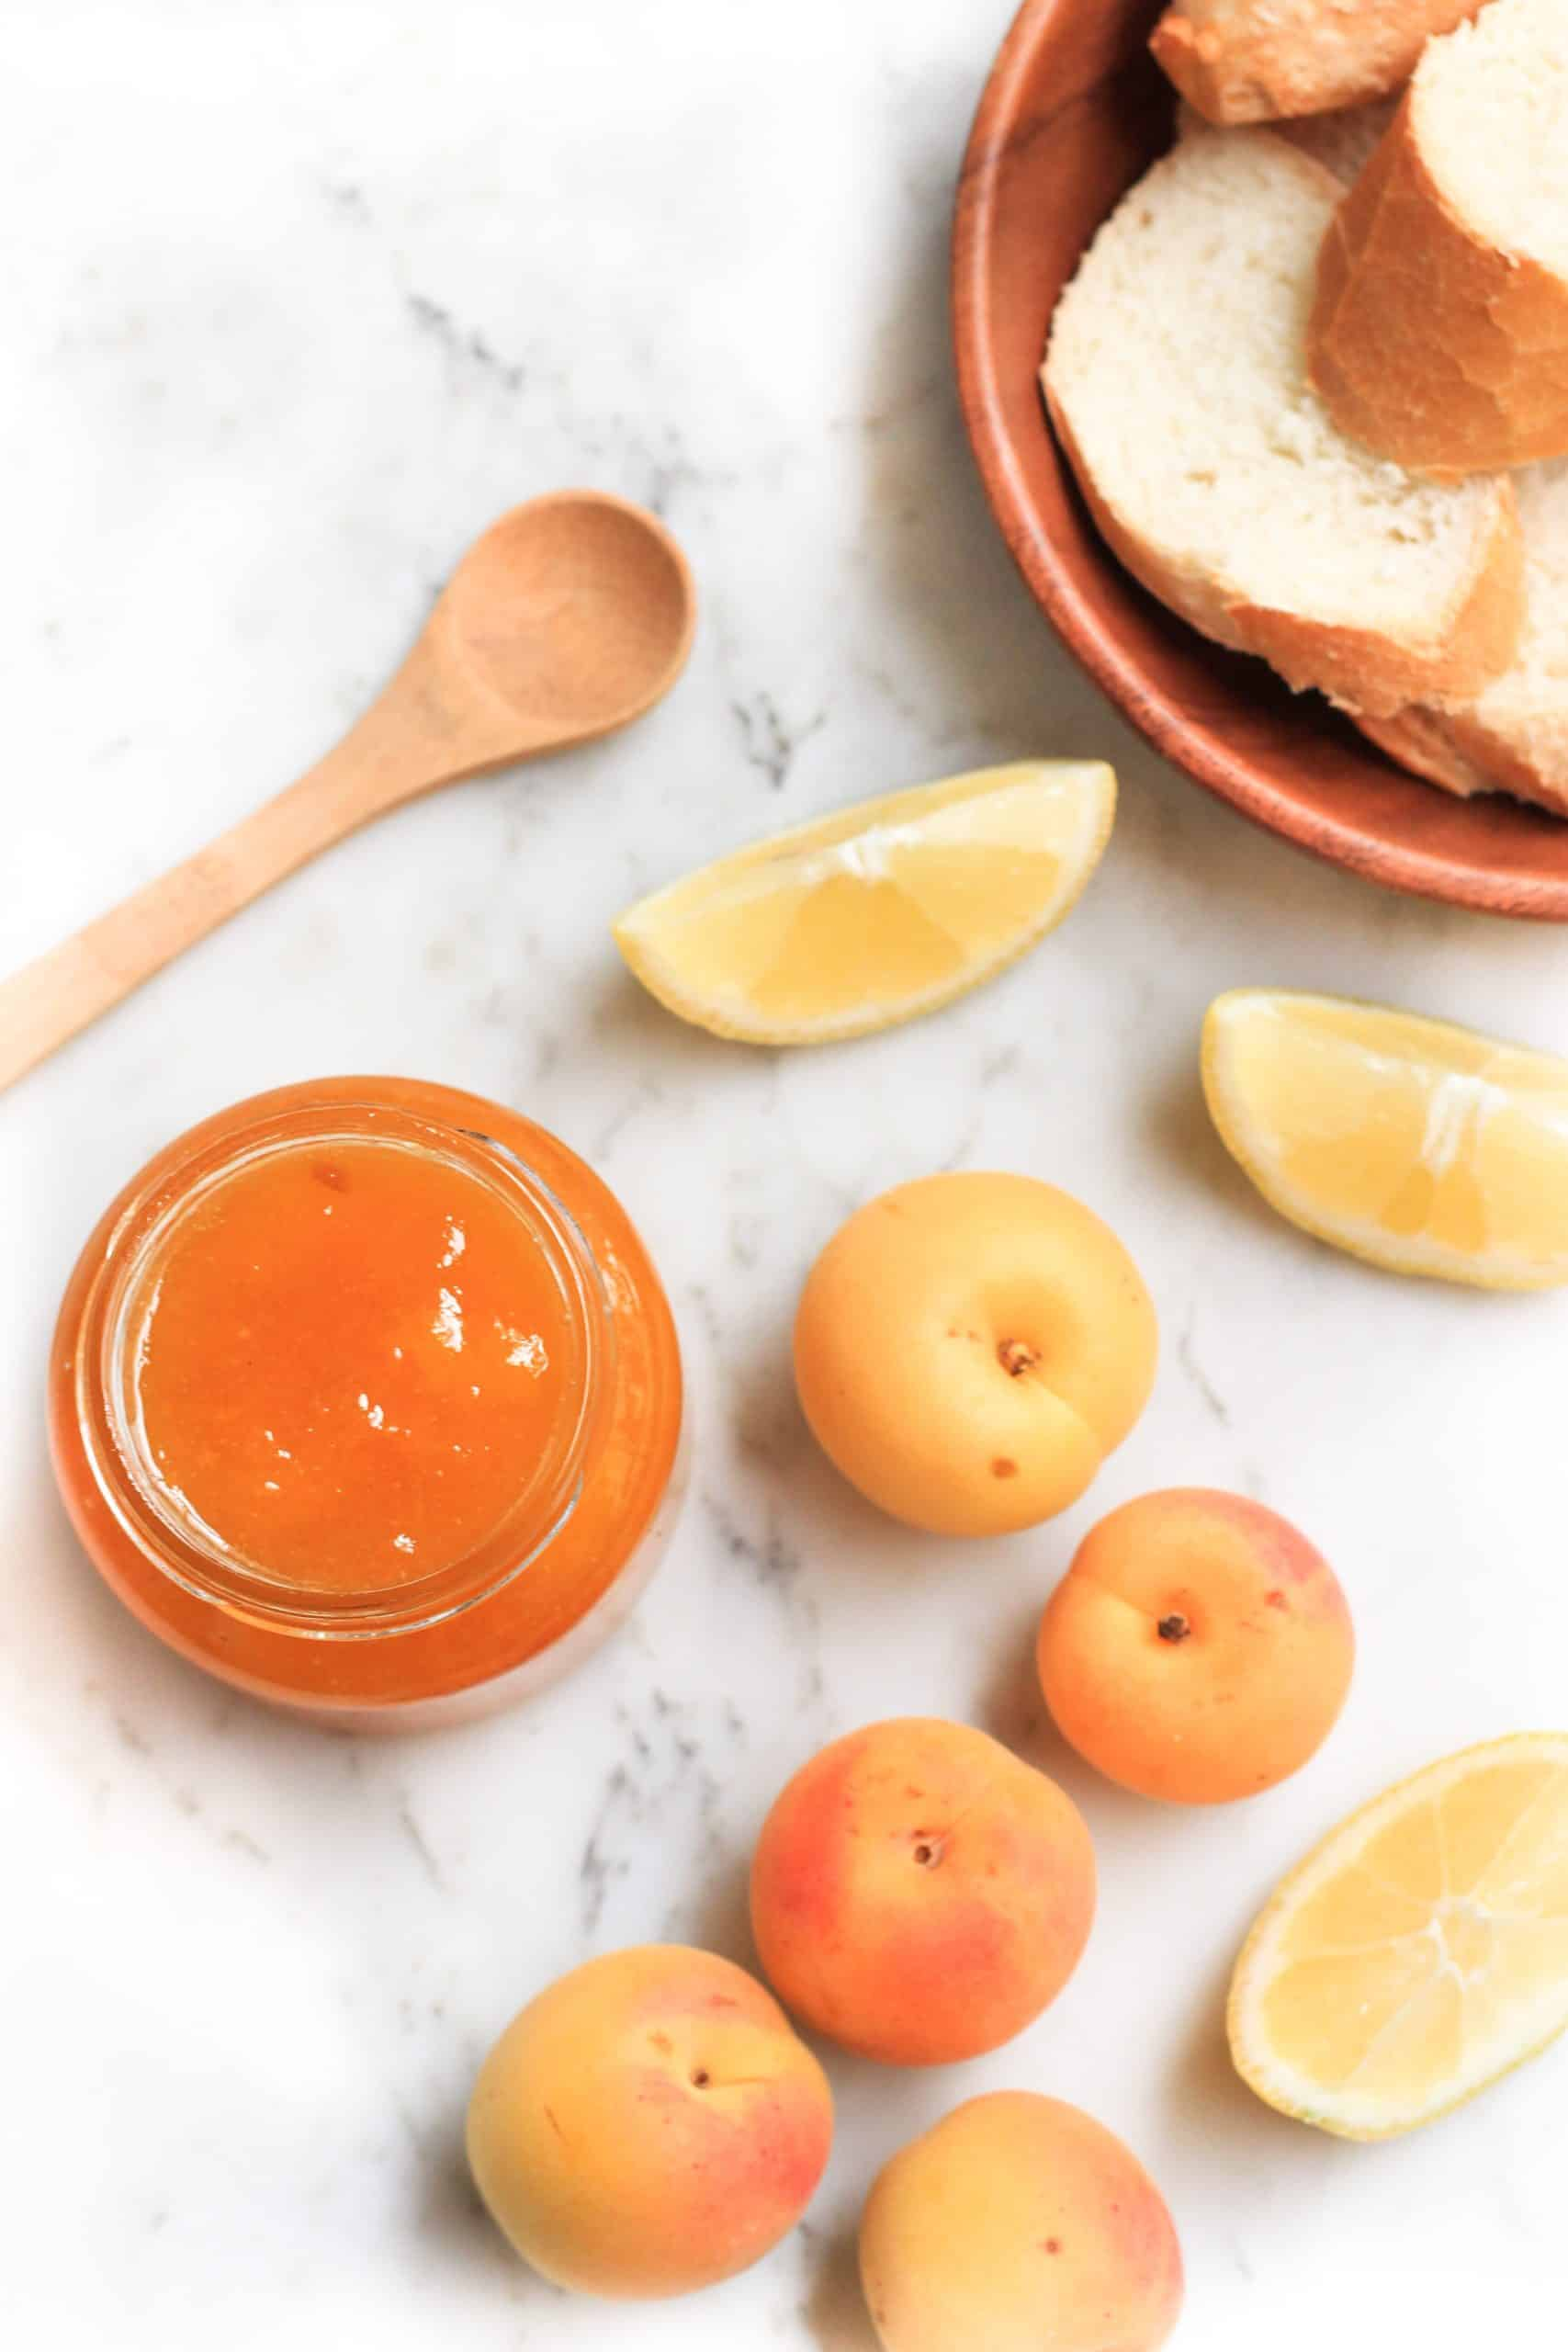 An open jar of jam, apricots, lemons, and bread on a marble board.